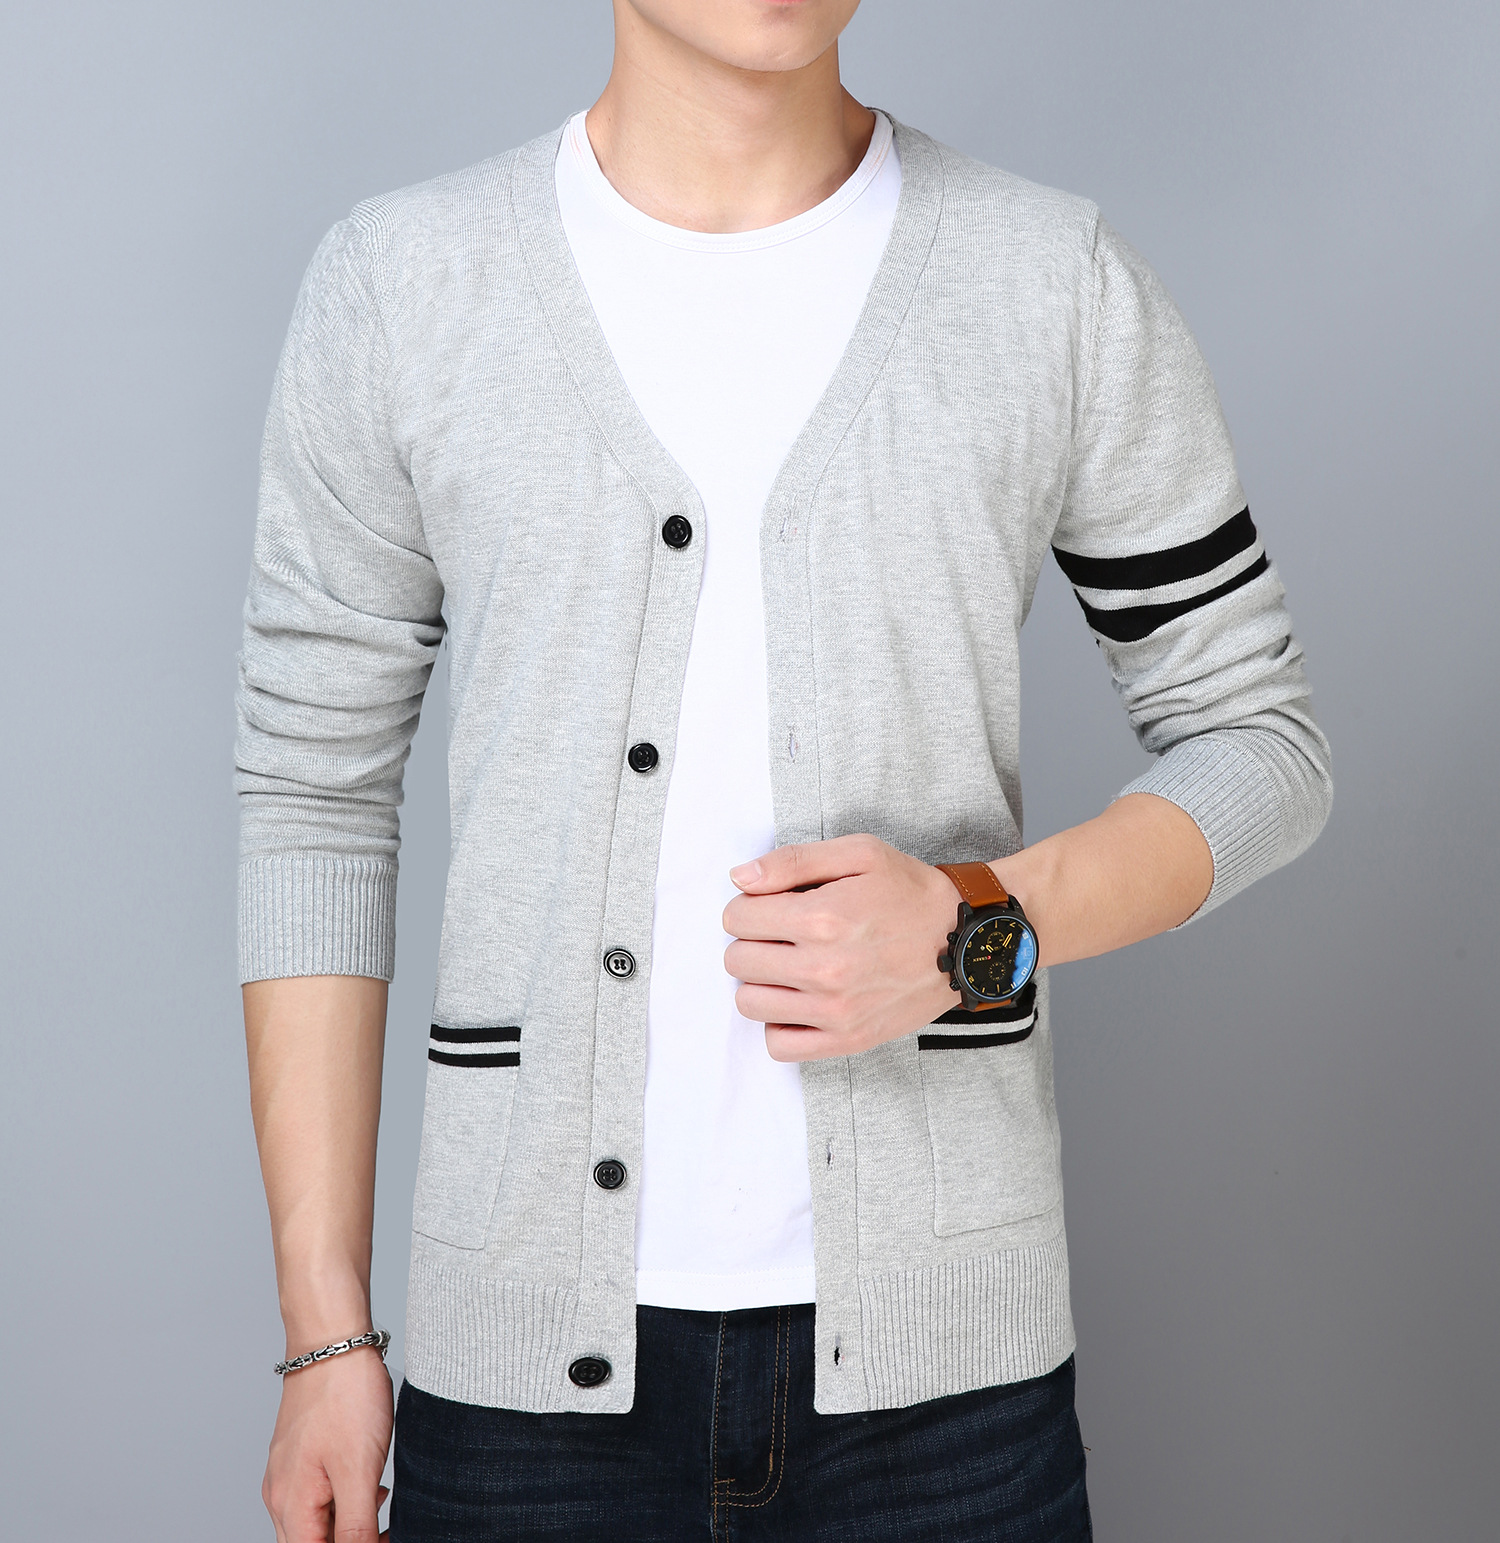 Sweaters Trustful Mrmt 2018 Brand New Mens Jackets Knitted Sweaters Cardigan Long Sleeve Overcoat For Male Sweaters Jacket Clothing Garment